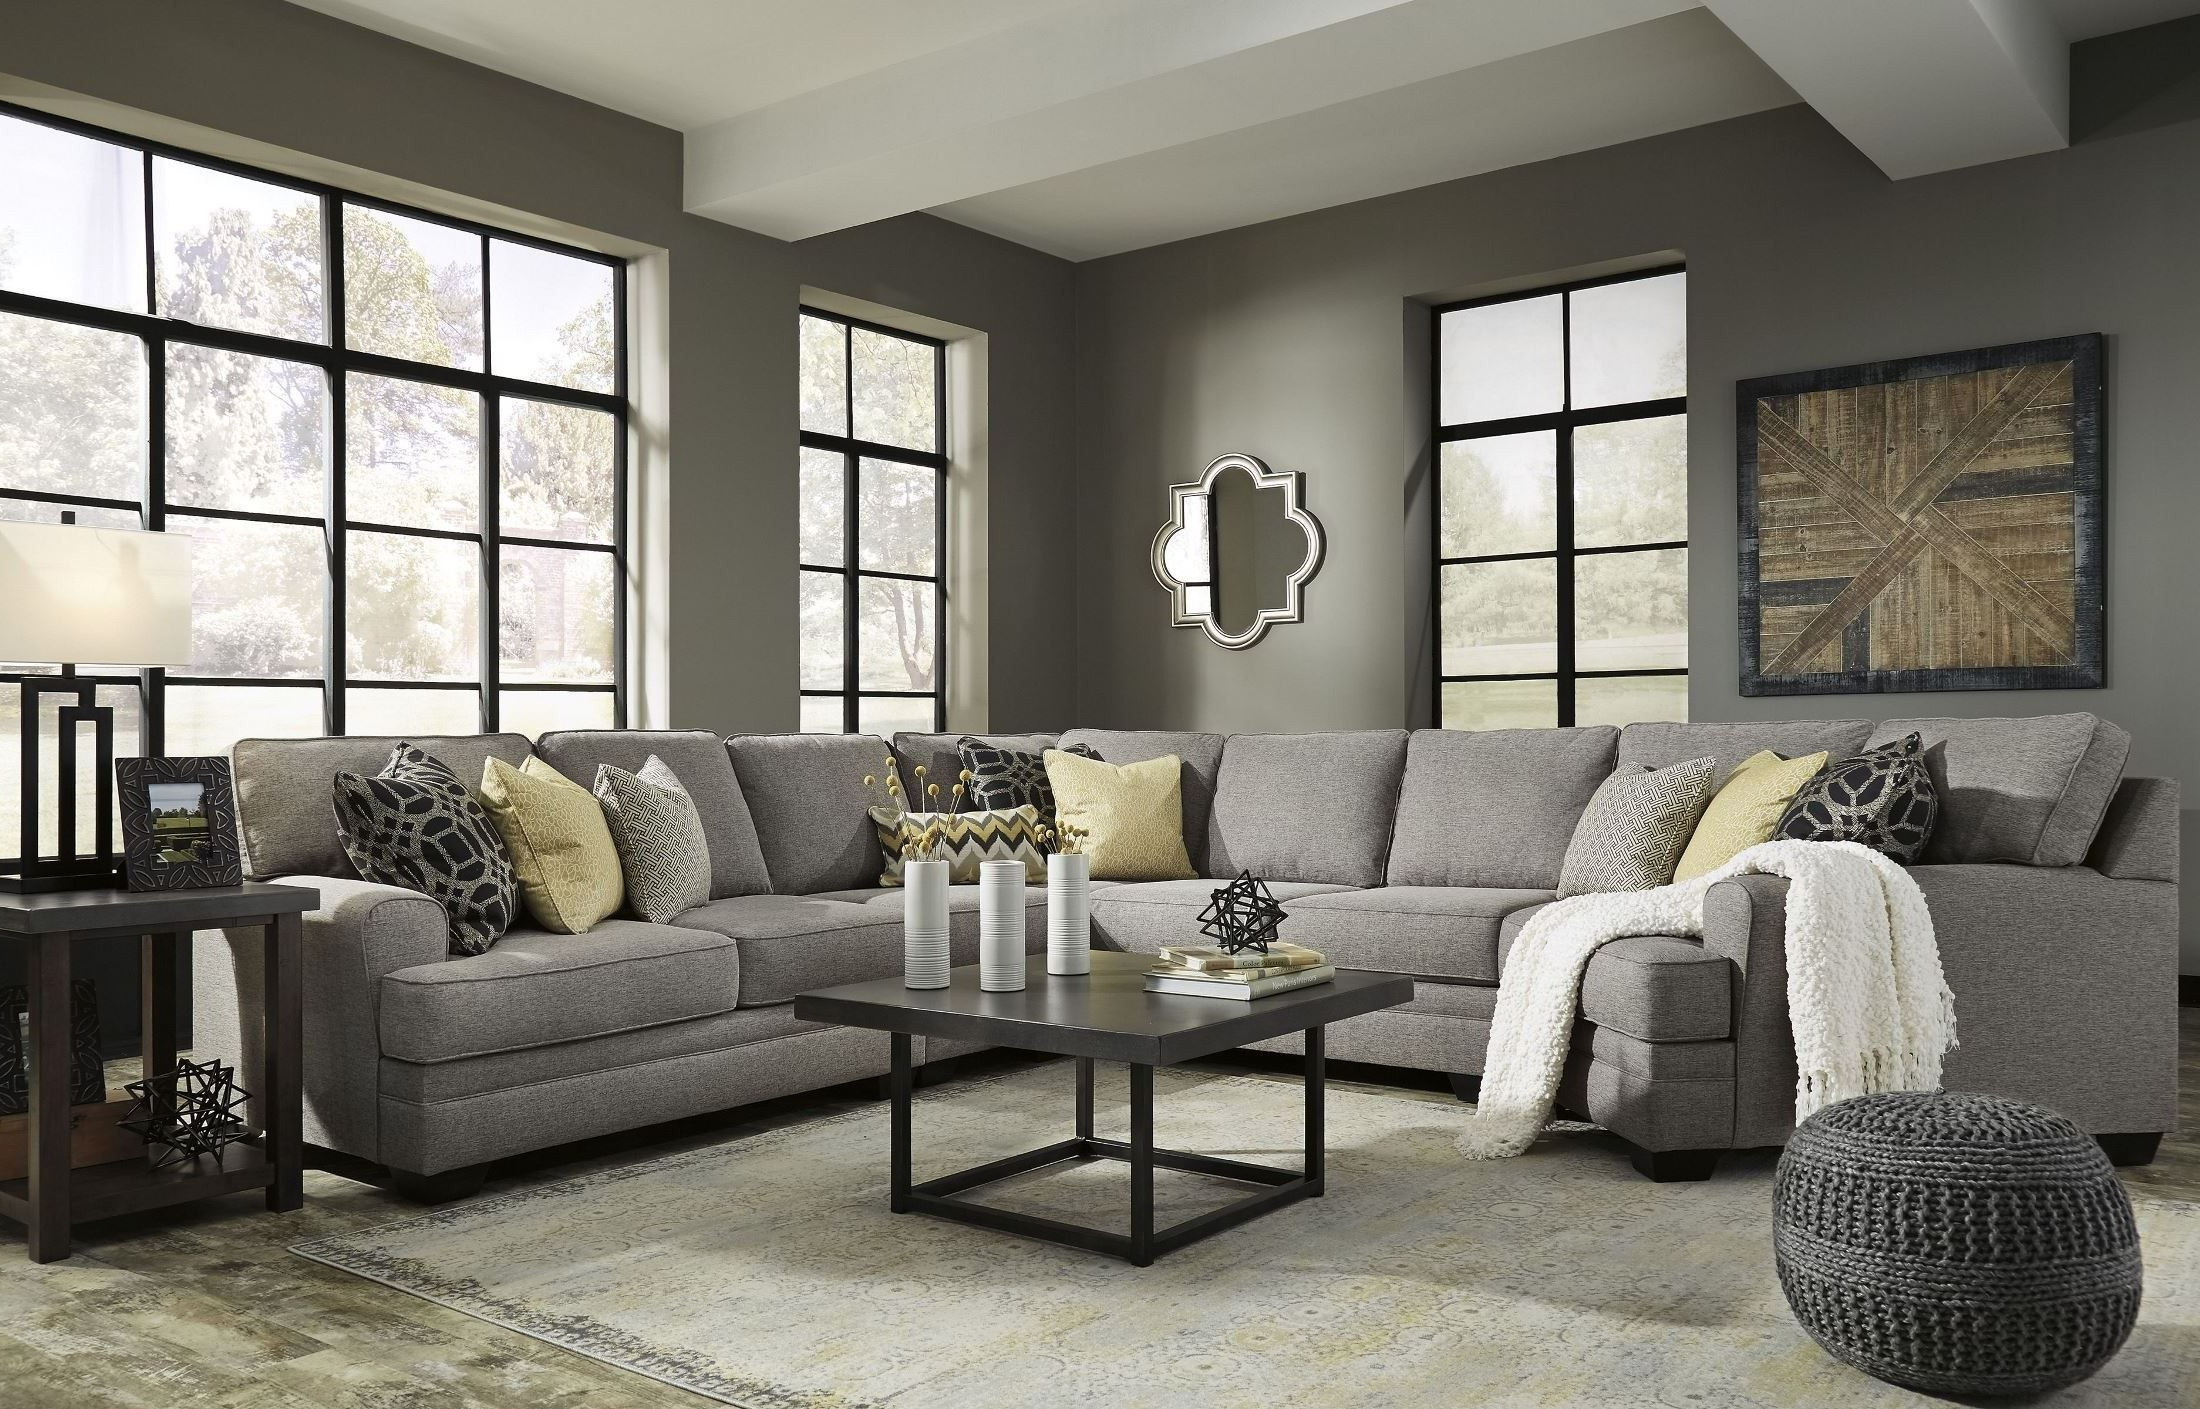 Aspen 2 Piece Sleeper Sectionals With Raf Chaise Within Most Recent Cresson Pewter Laf Cuddler Sectional From Ashley (View 14 of 20)